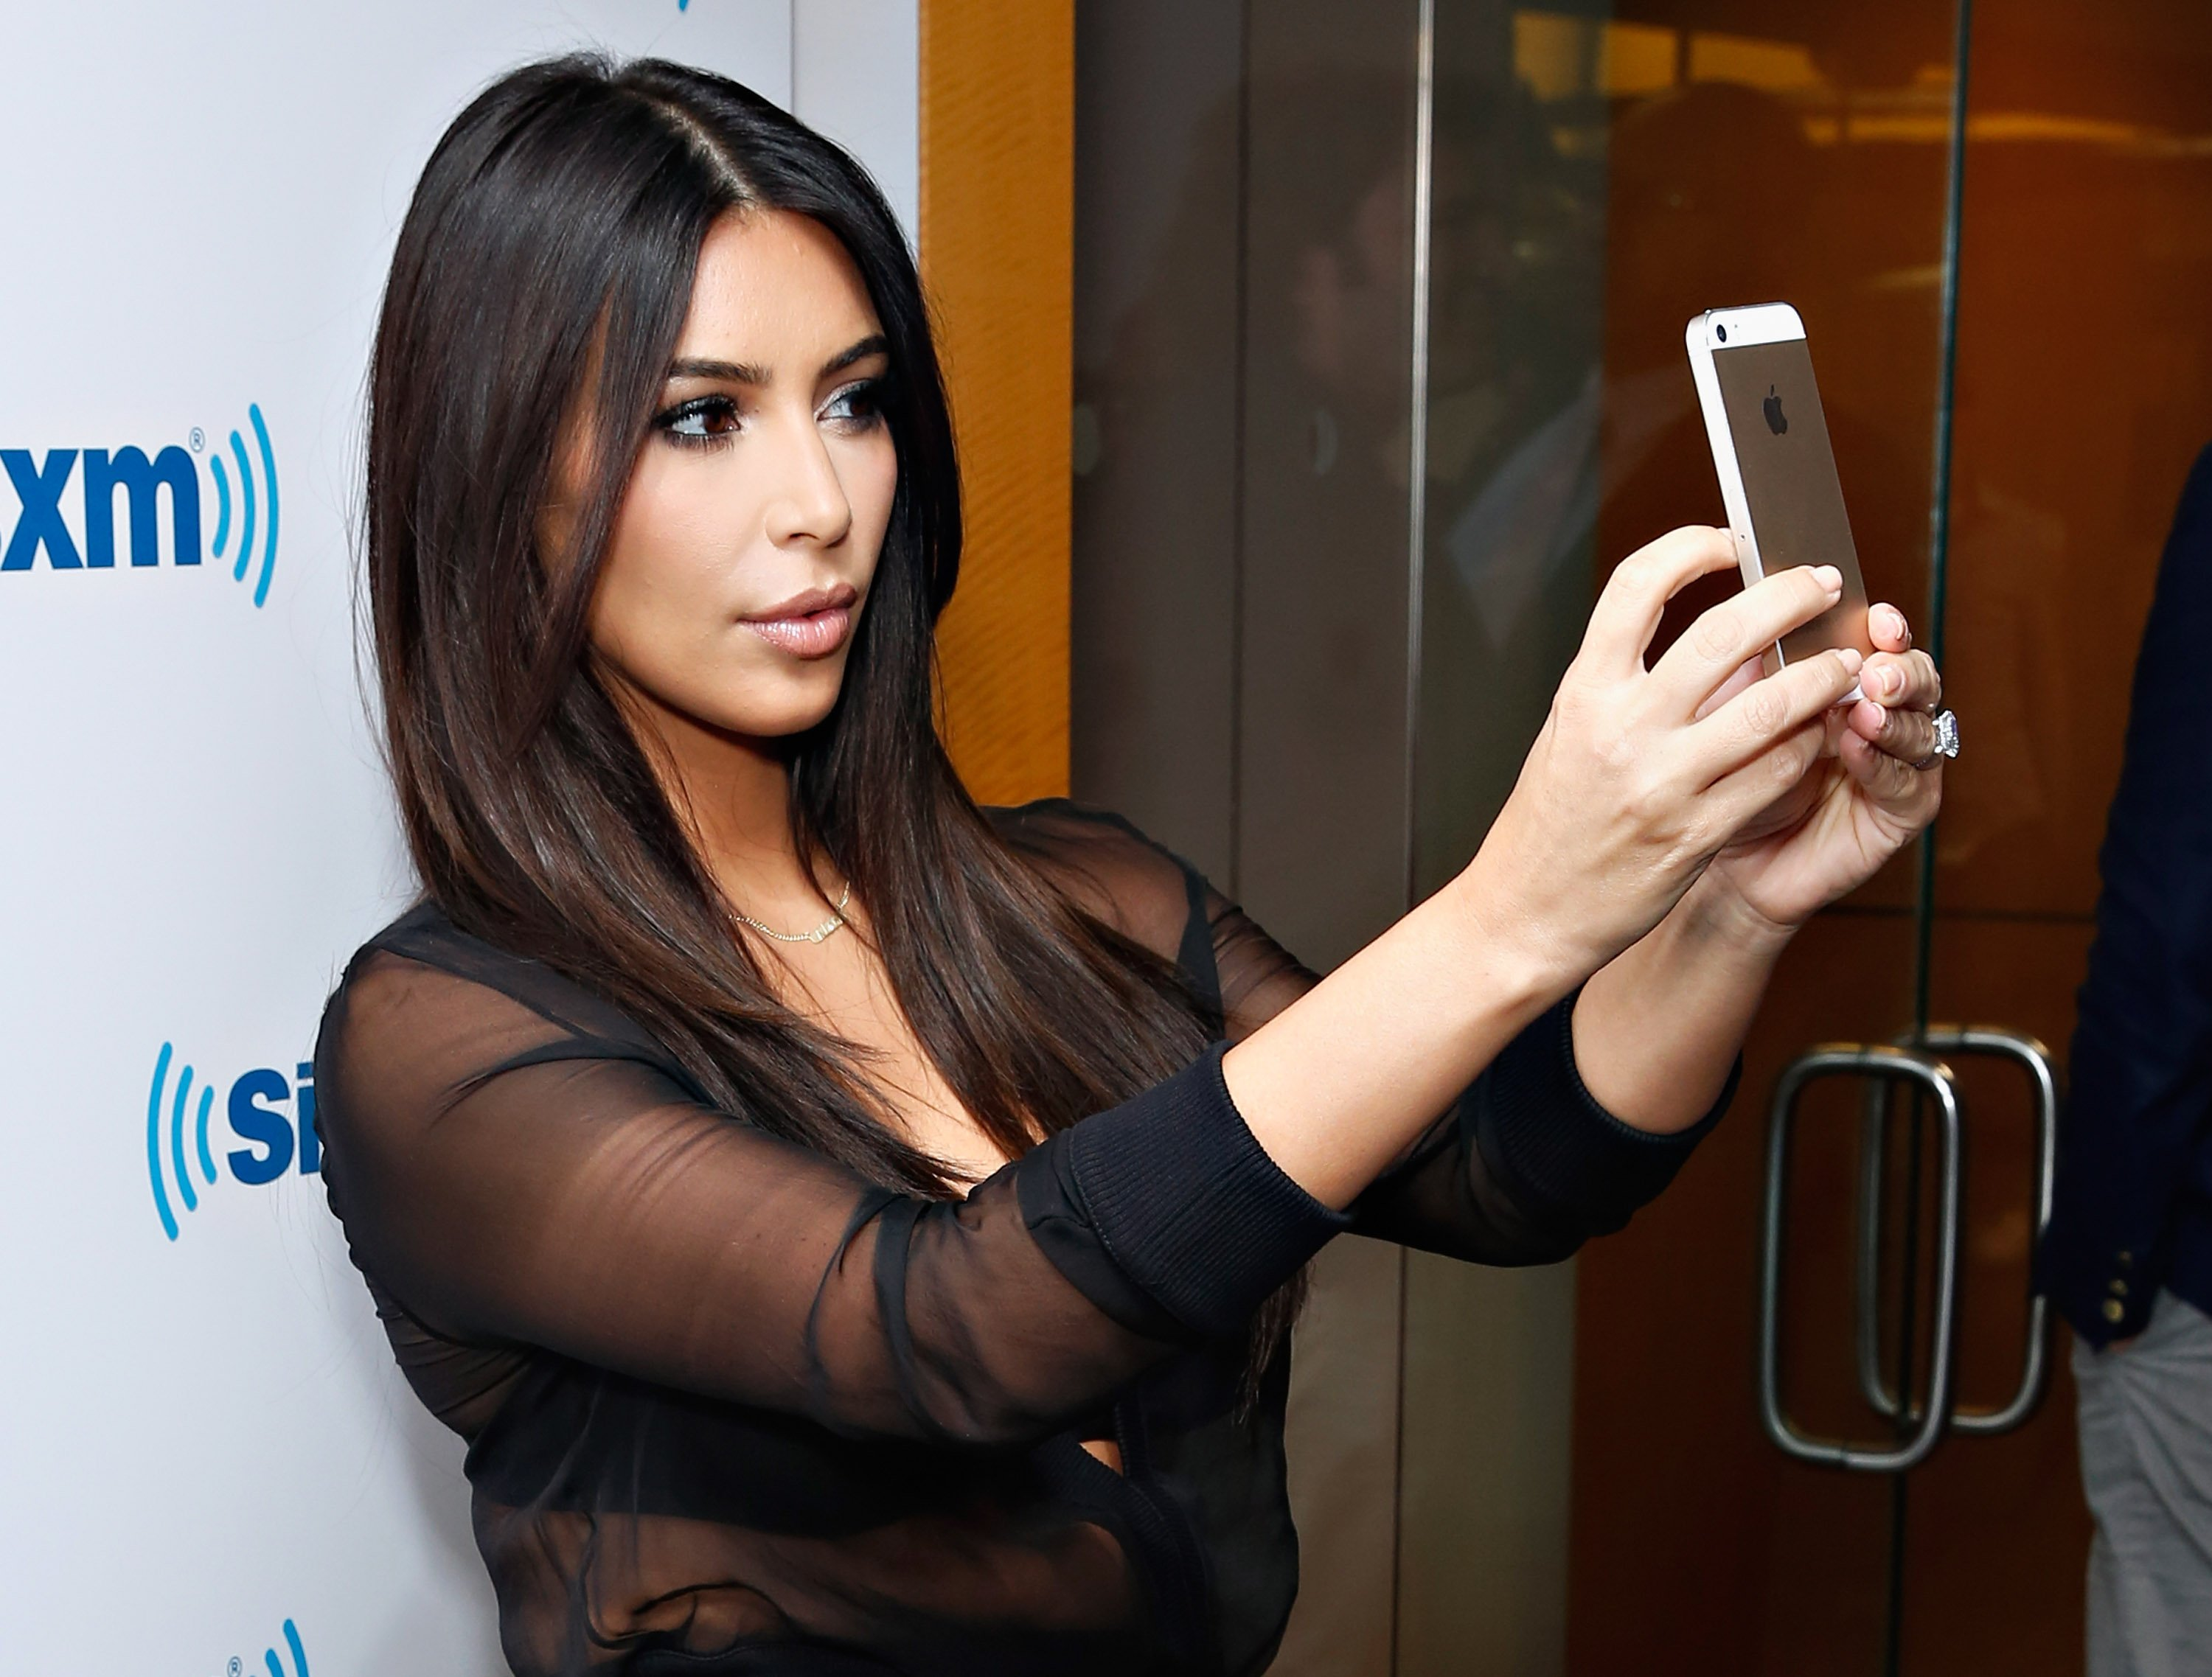 Kim Kardashian takes a selfie at the SiriusXM Studios on August 11, 2014. | Source: Getty Images